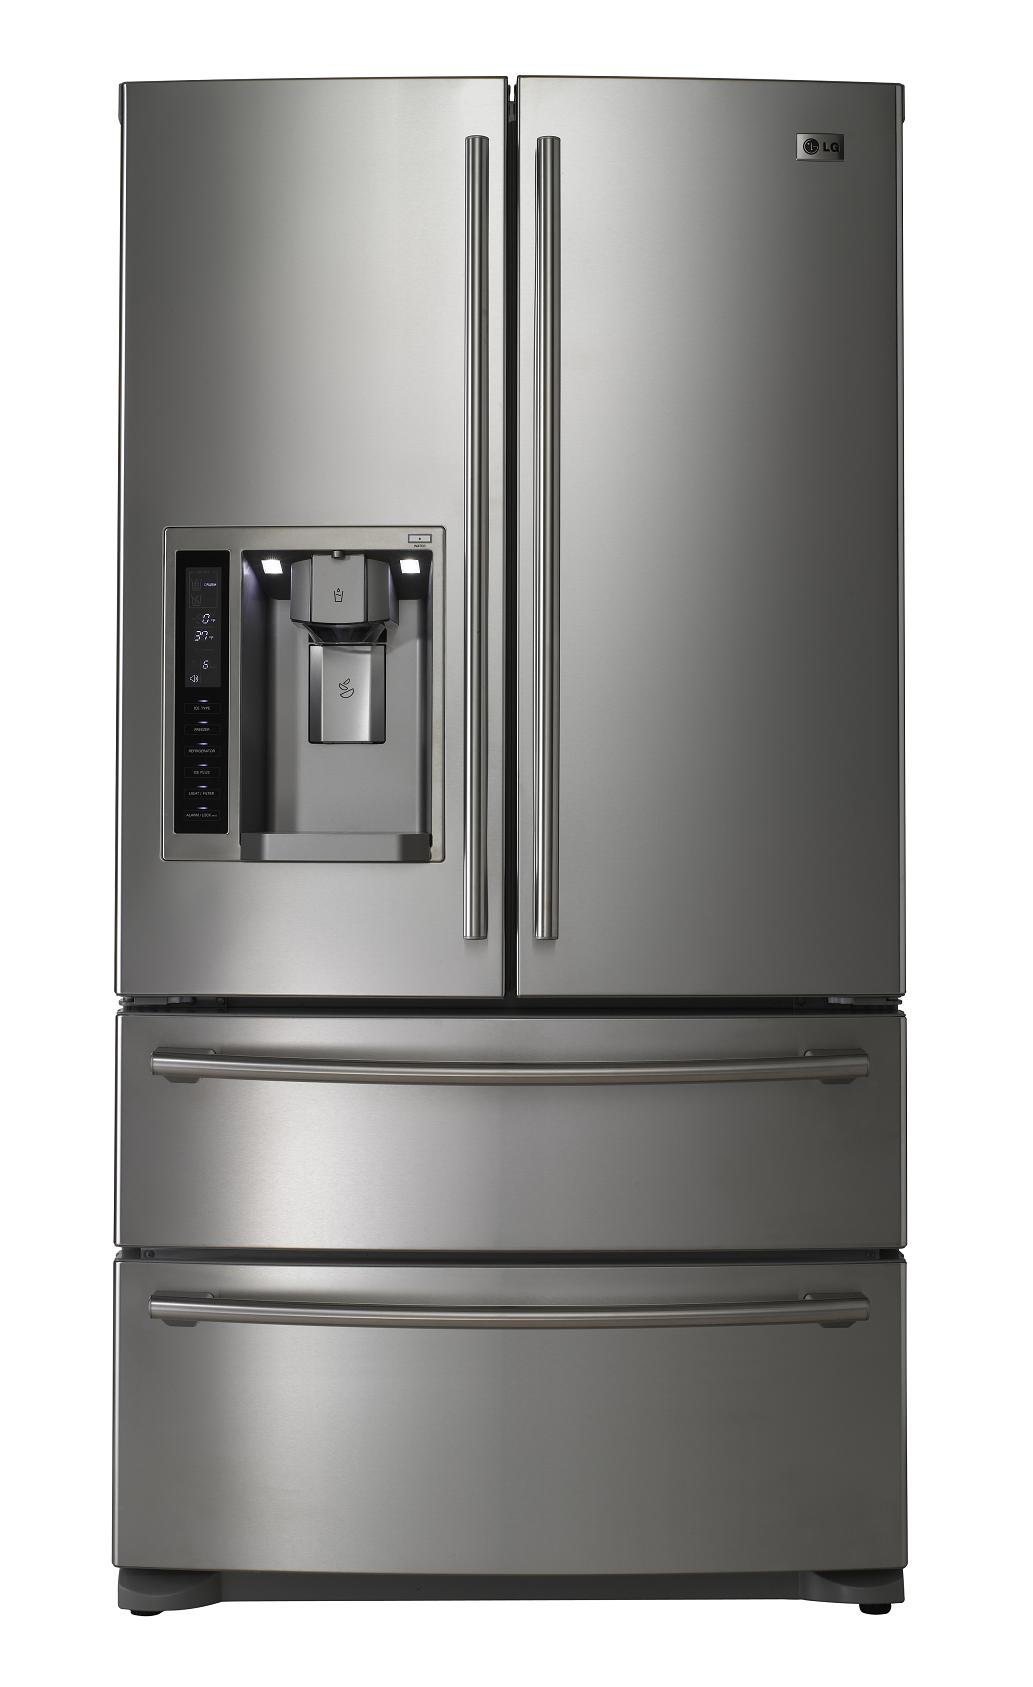 Le Meilleur Refrigerators Over 25 Years Of Custom Cabinets Ce Mois Ci